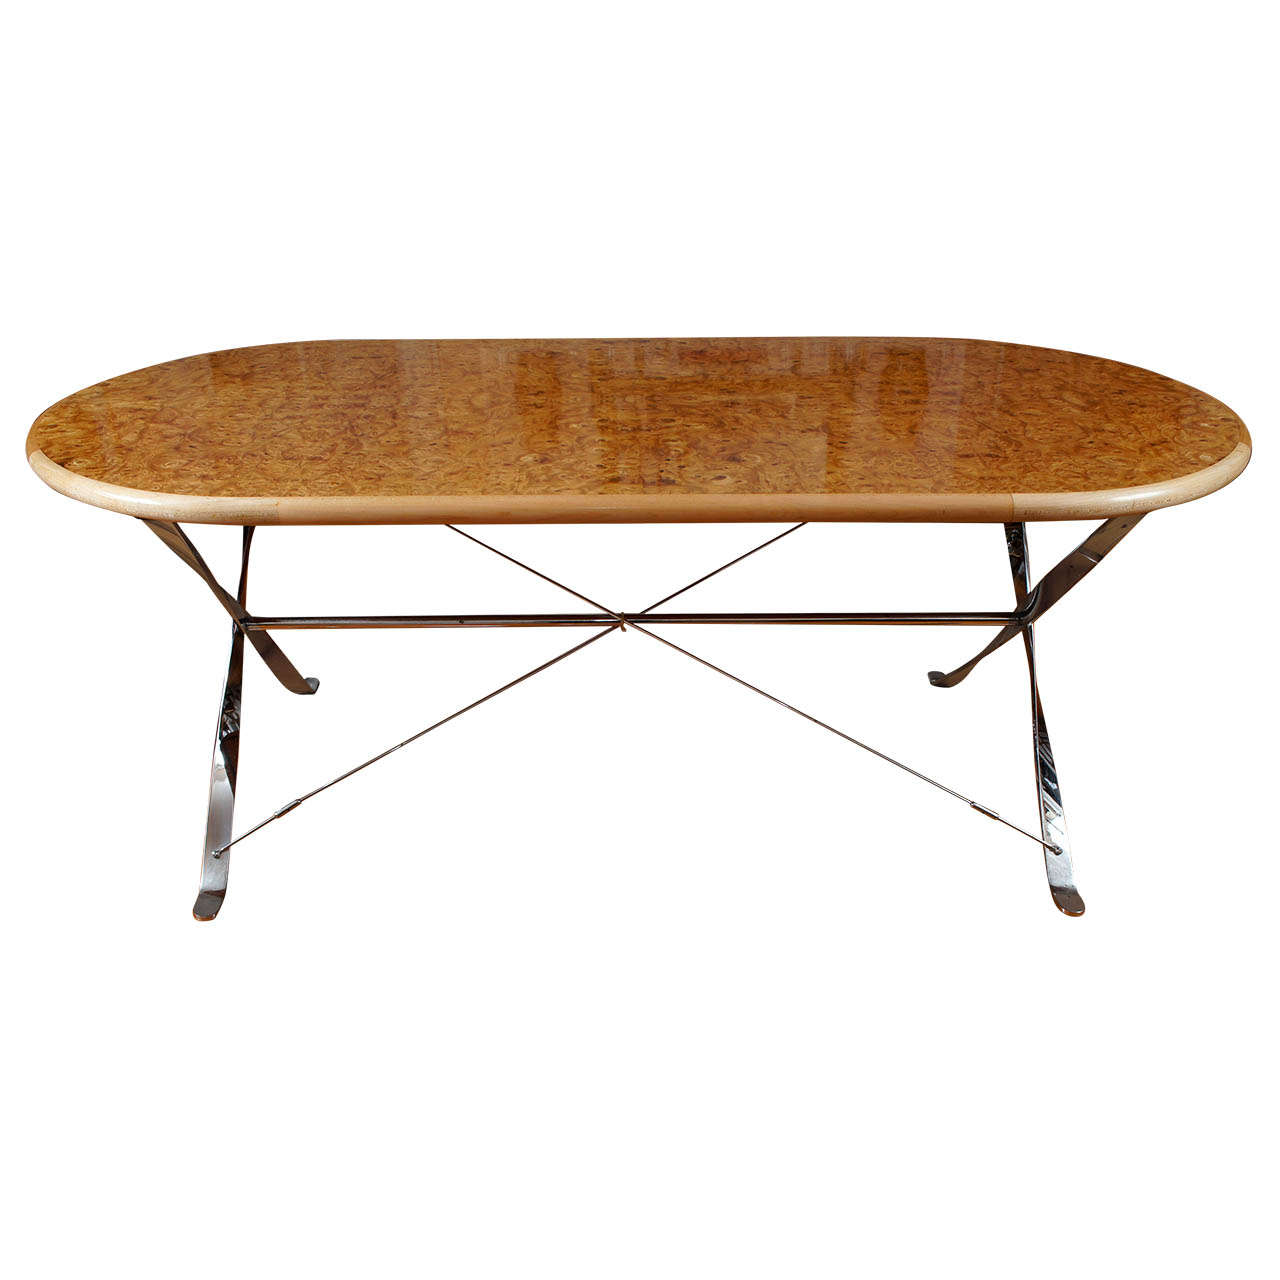 oval burl maple dining table on stainless steel base at